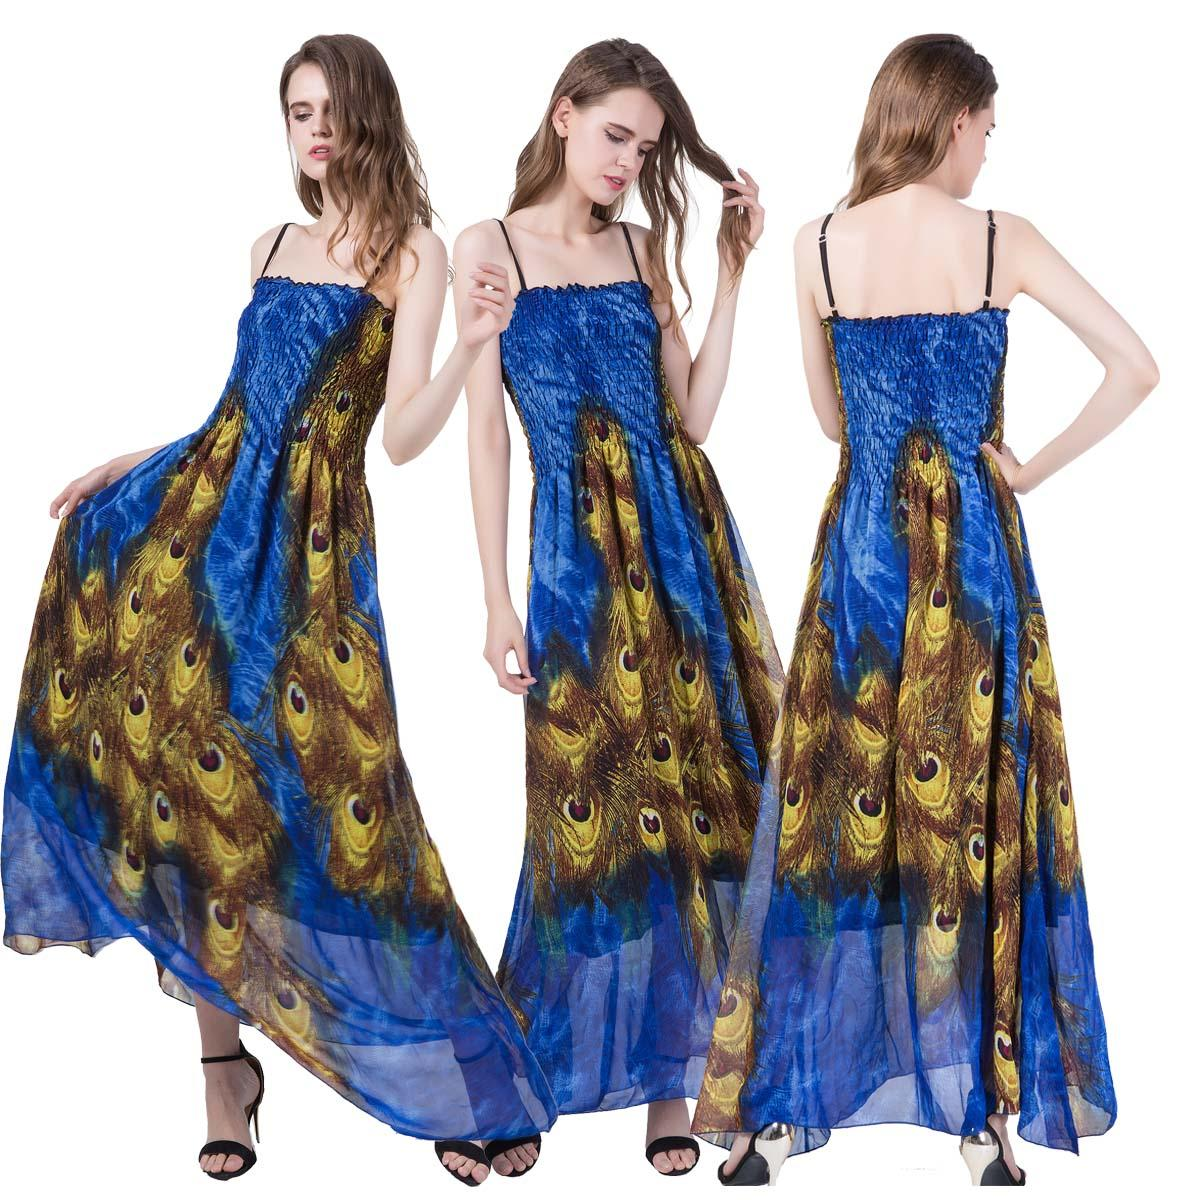 Summer Women Long Dress Peacock Floral Printed Dresses Boho Spaghetti Strap Party Prom Ball Dress Sexy Backless Beach Holiday